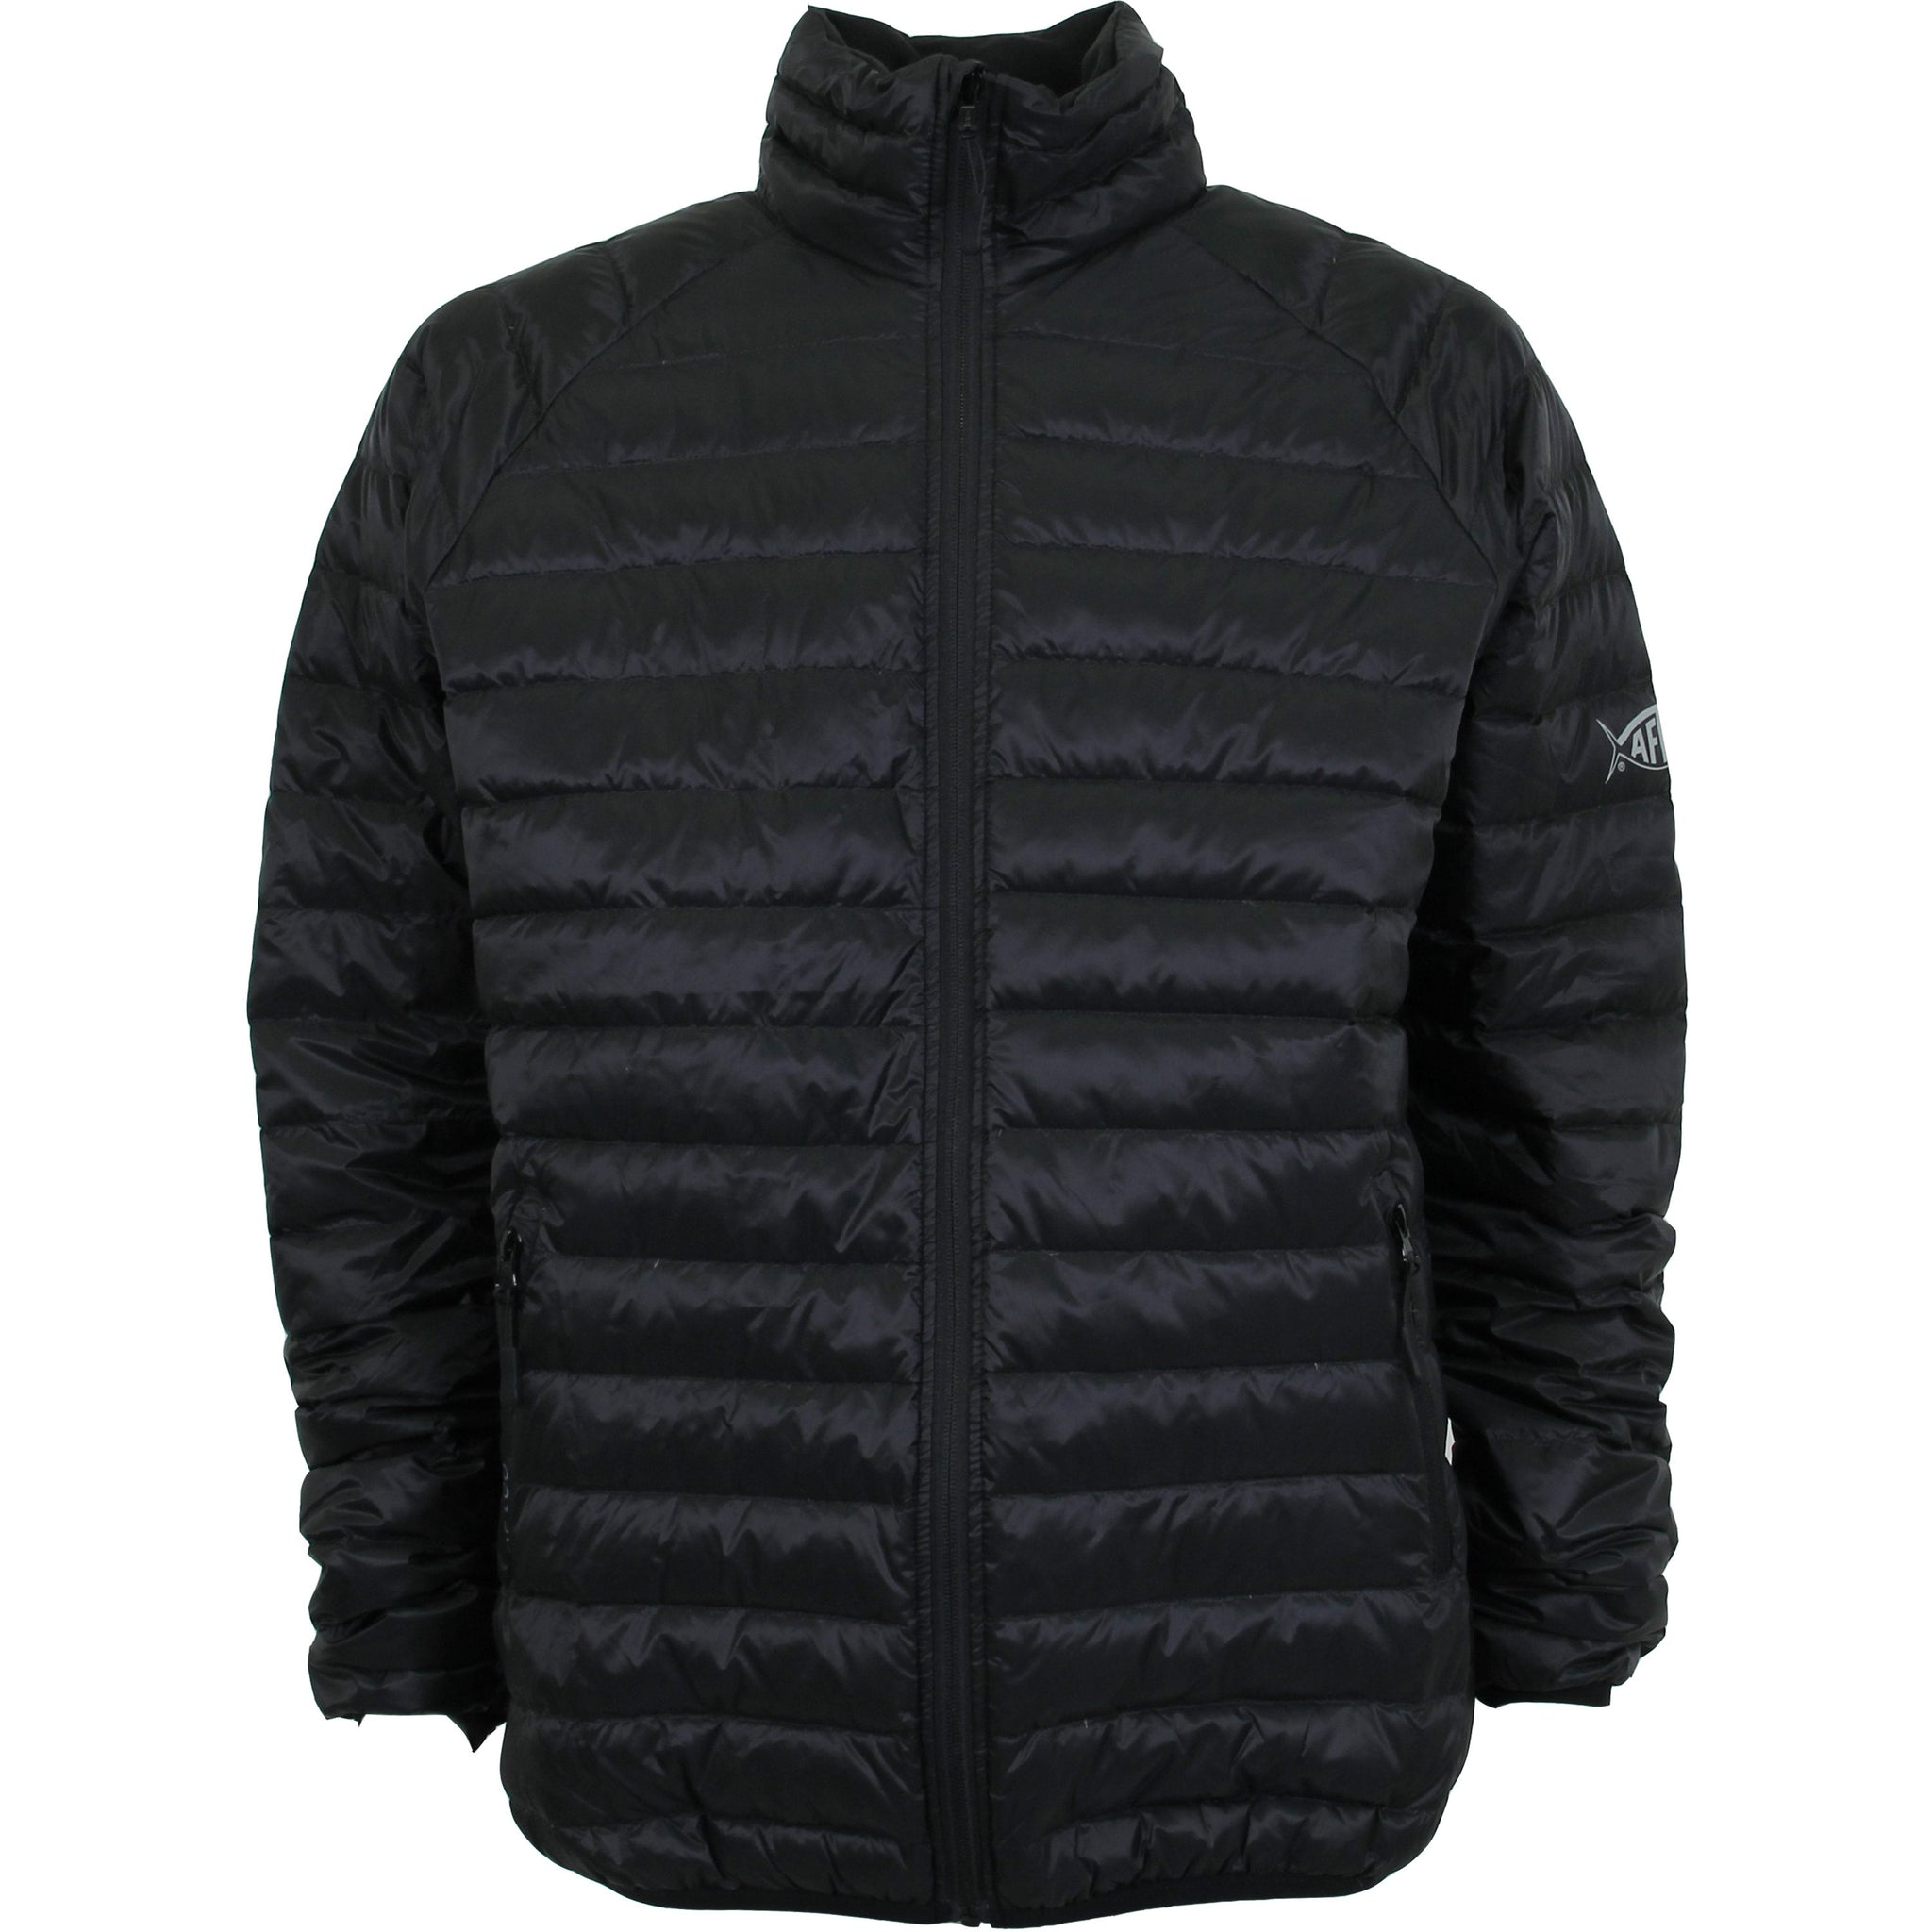 Adder Down Jacket